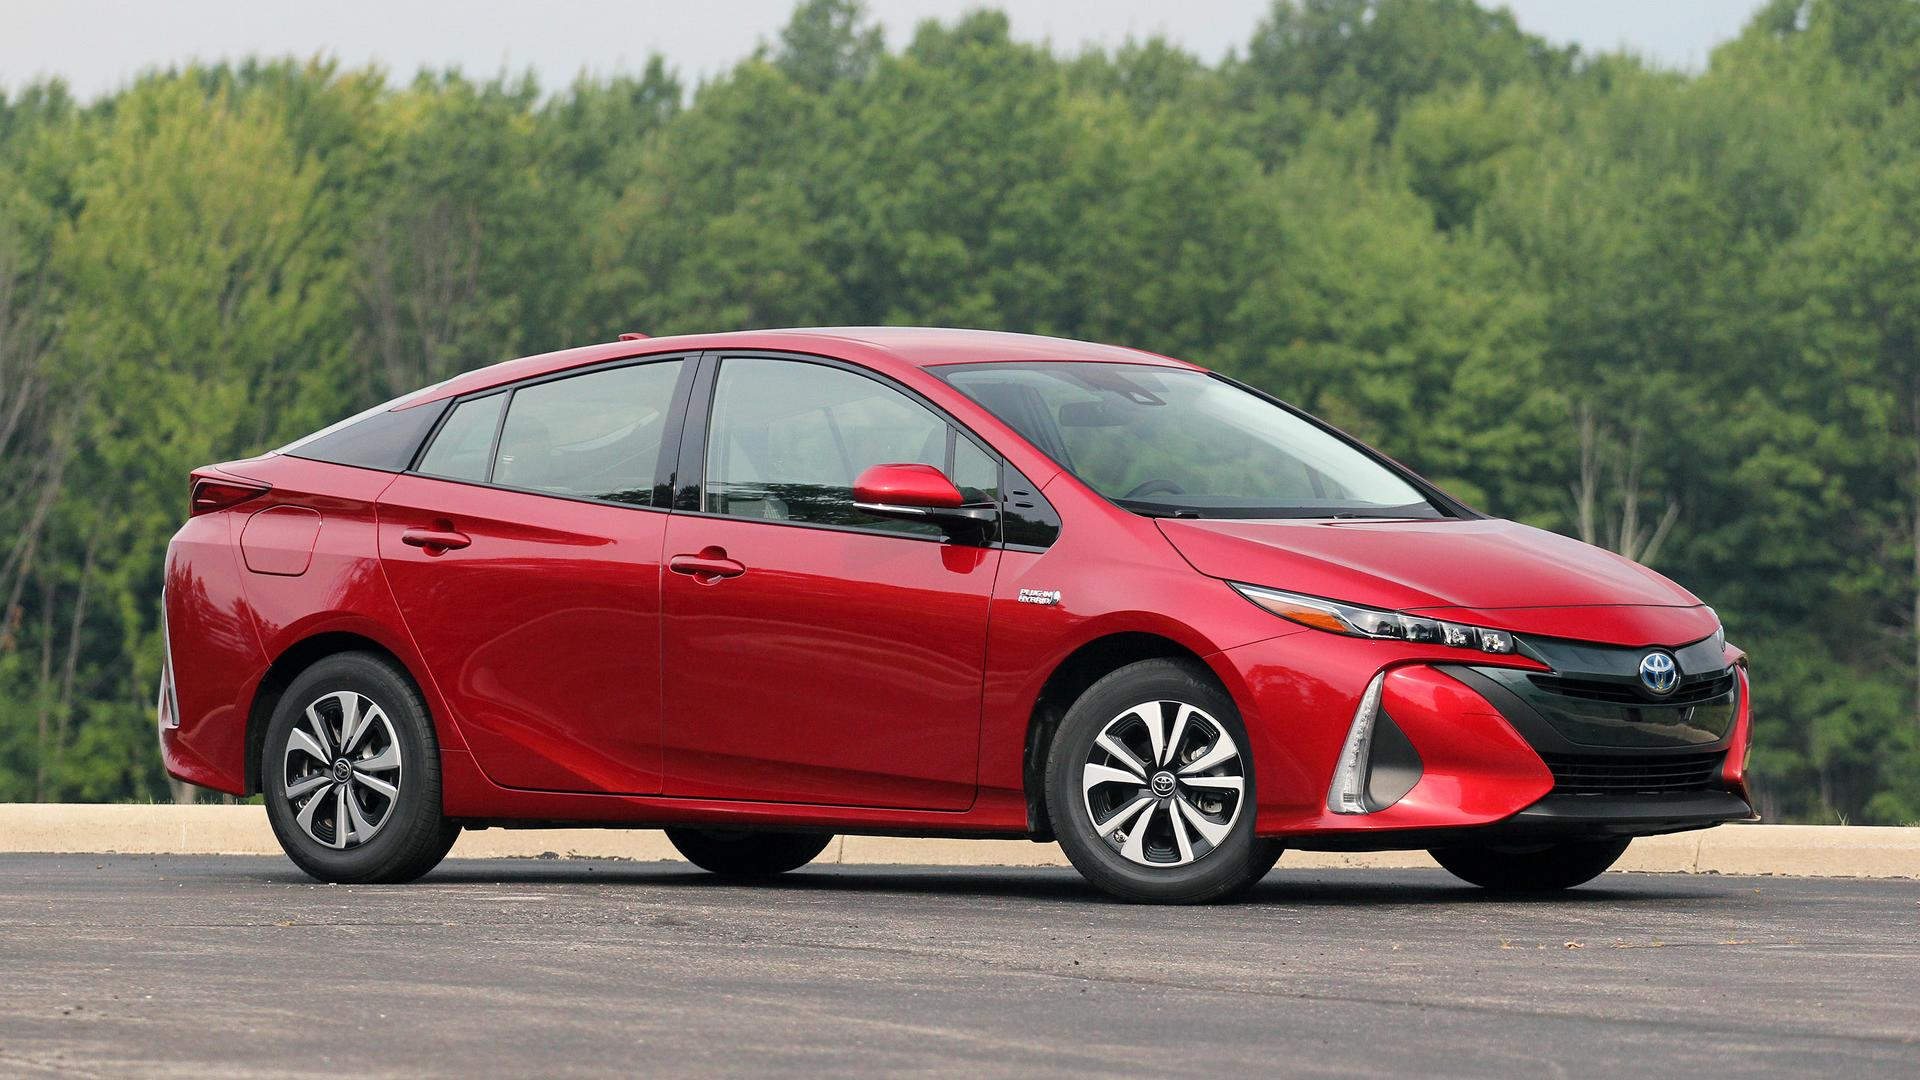 2017 toyota prius prime review the argument against cord. Black Bedroom Furniture Sets. Home Design Ideas